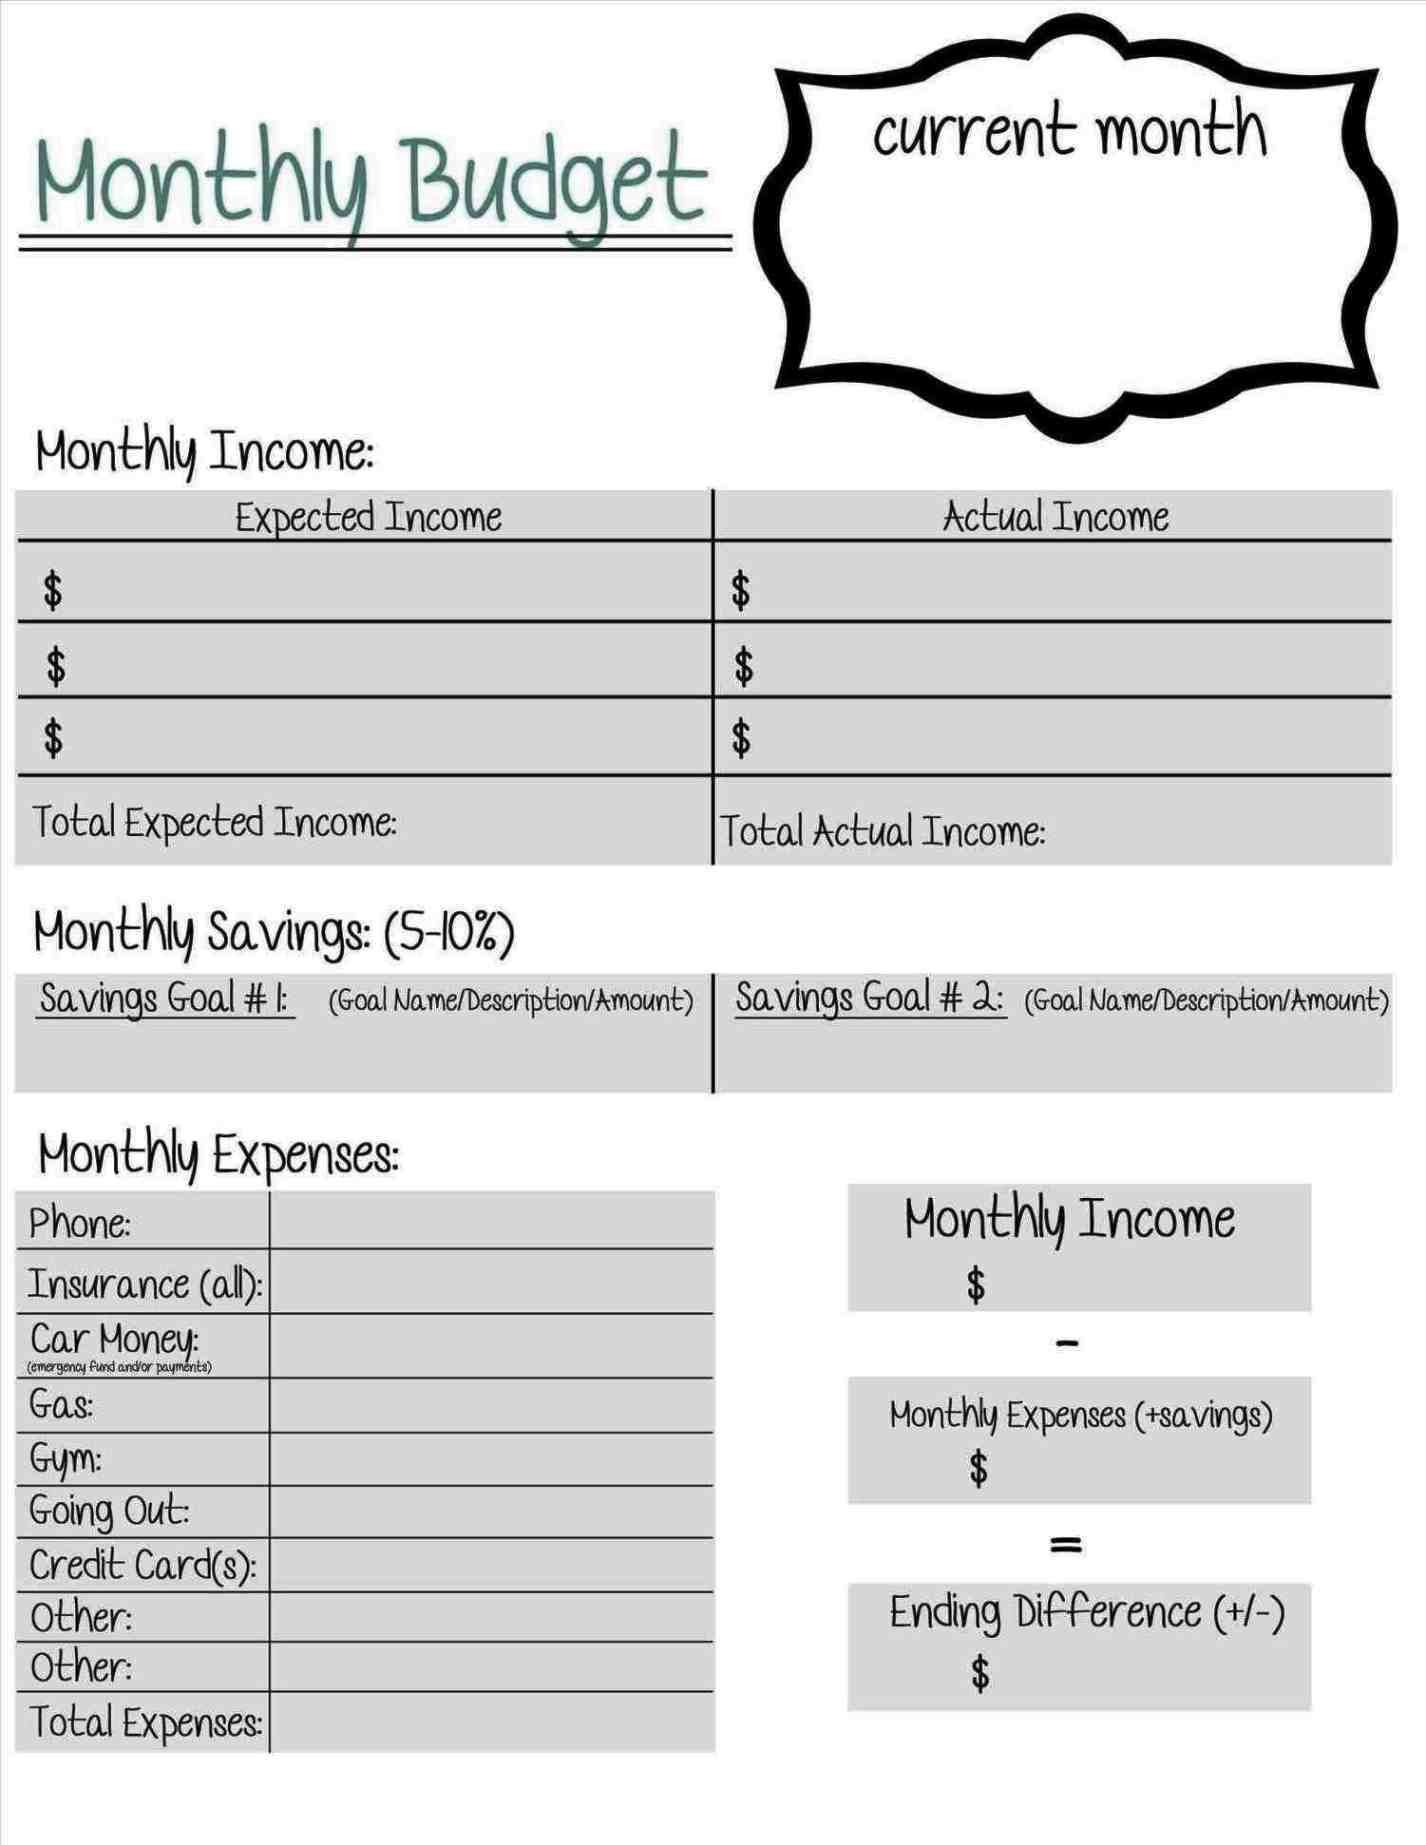 Monthly College Expense Calculator Worksheet